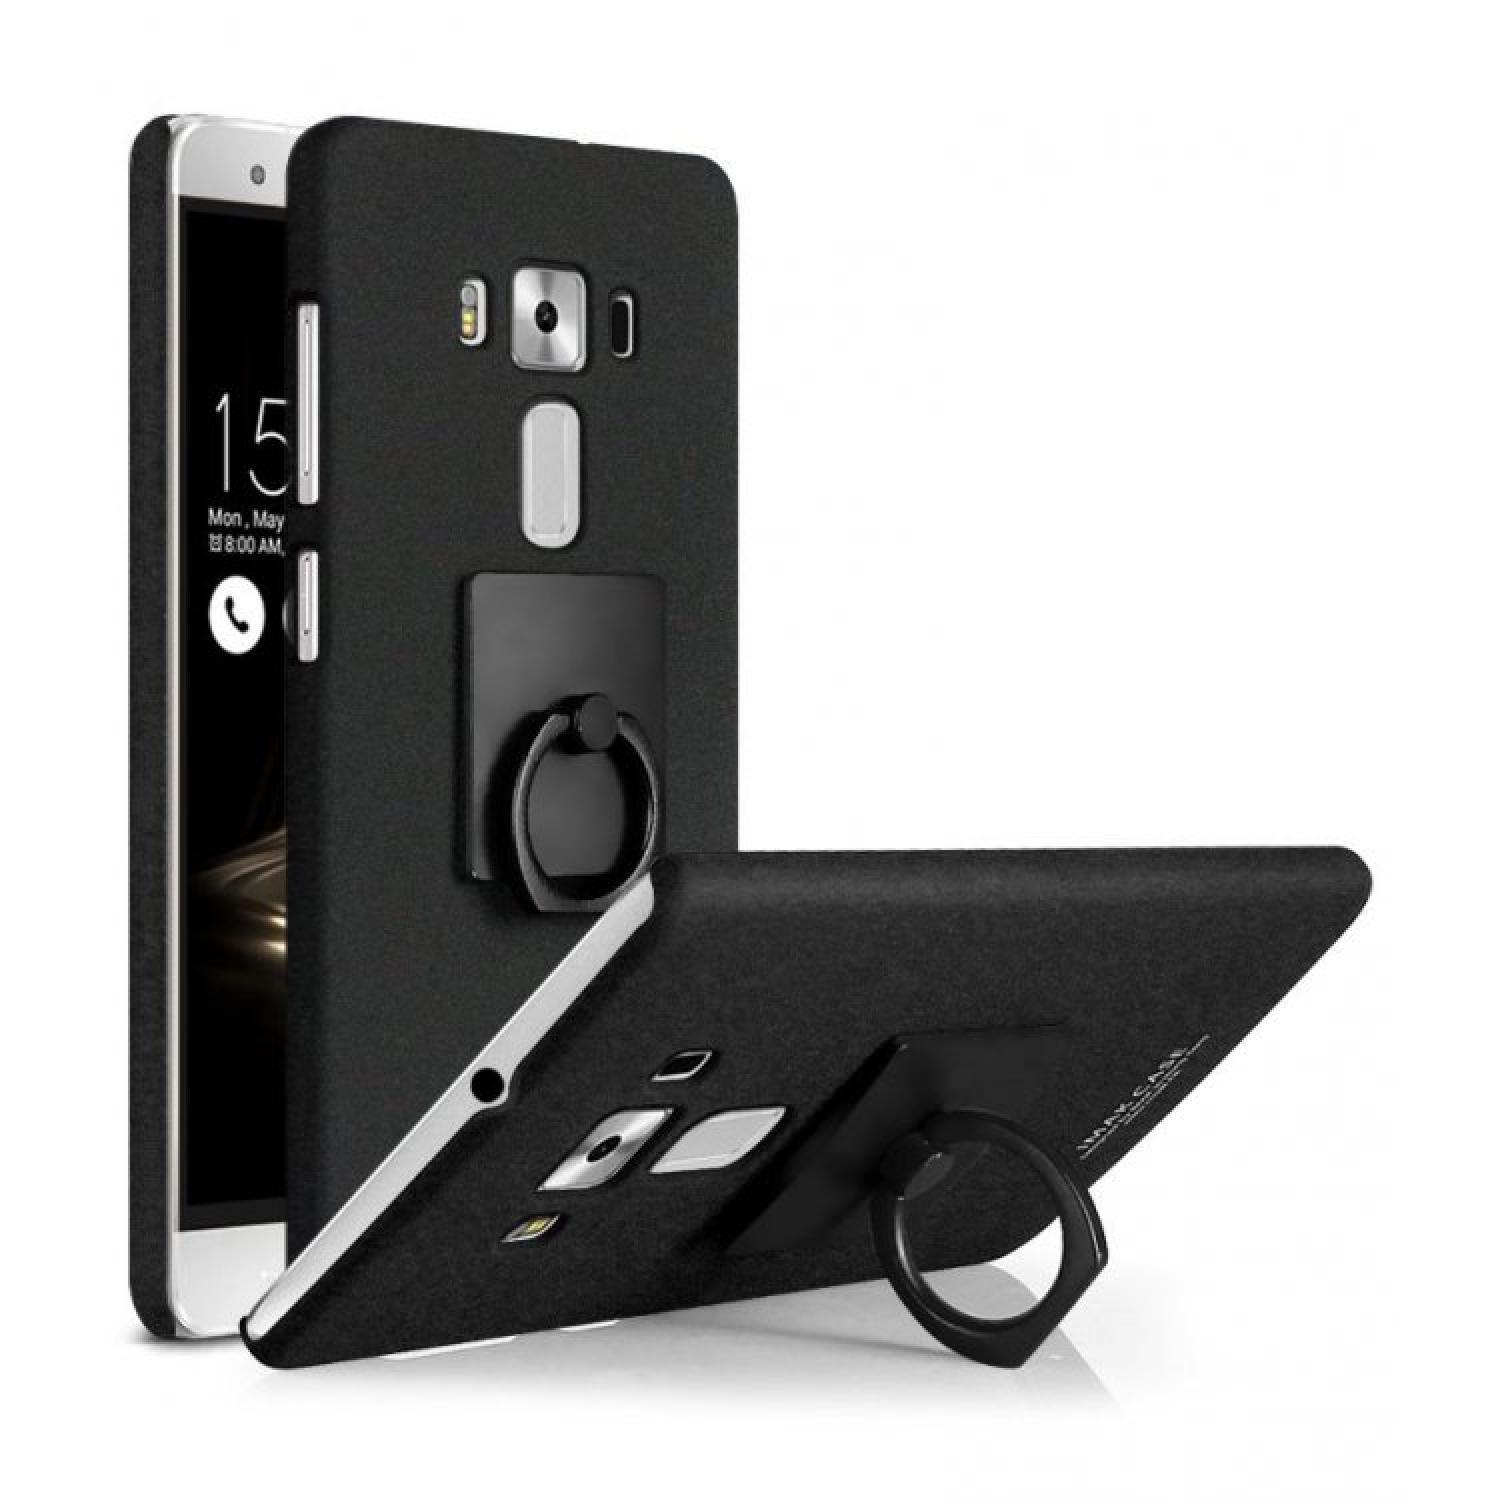 Casing Hp Imak Contracted iRing Hard Case for Asus Zenfone 3 Murah Lucu